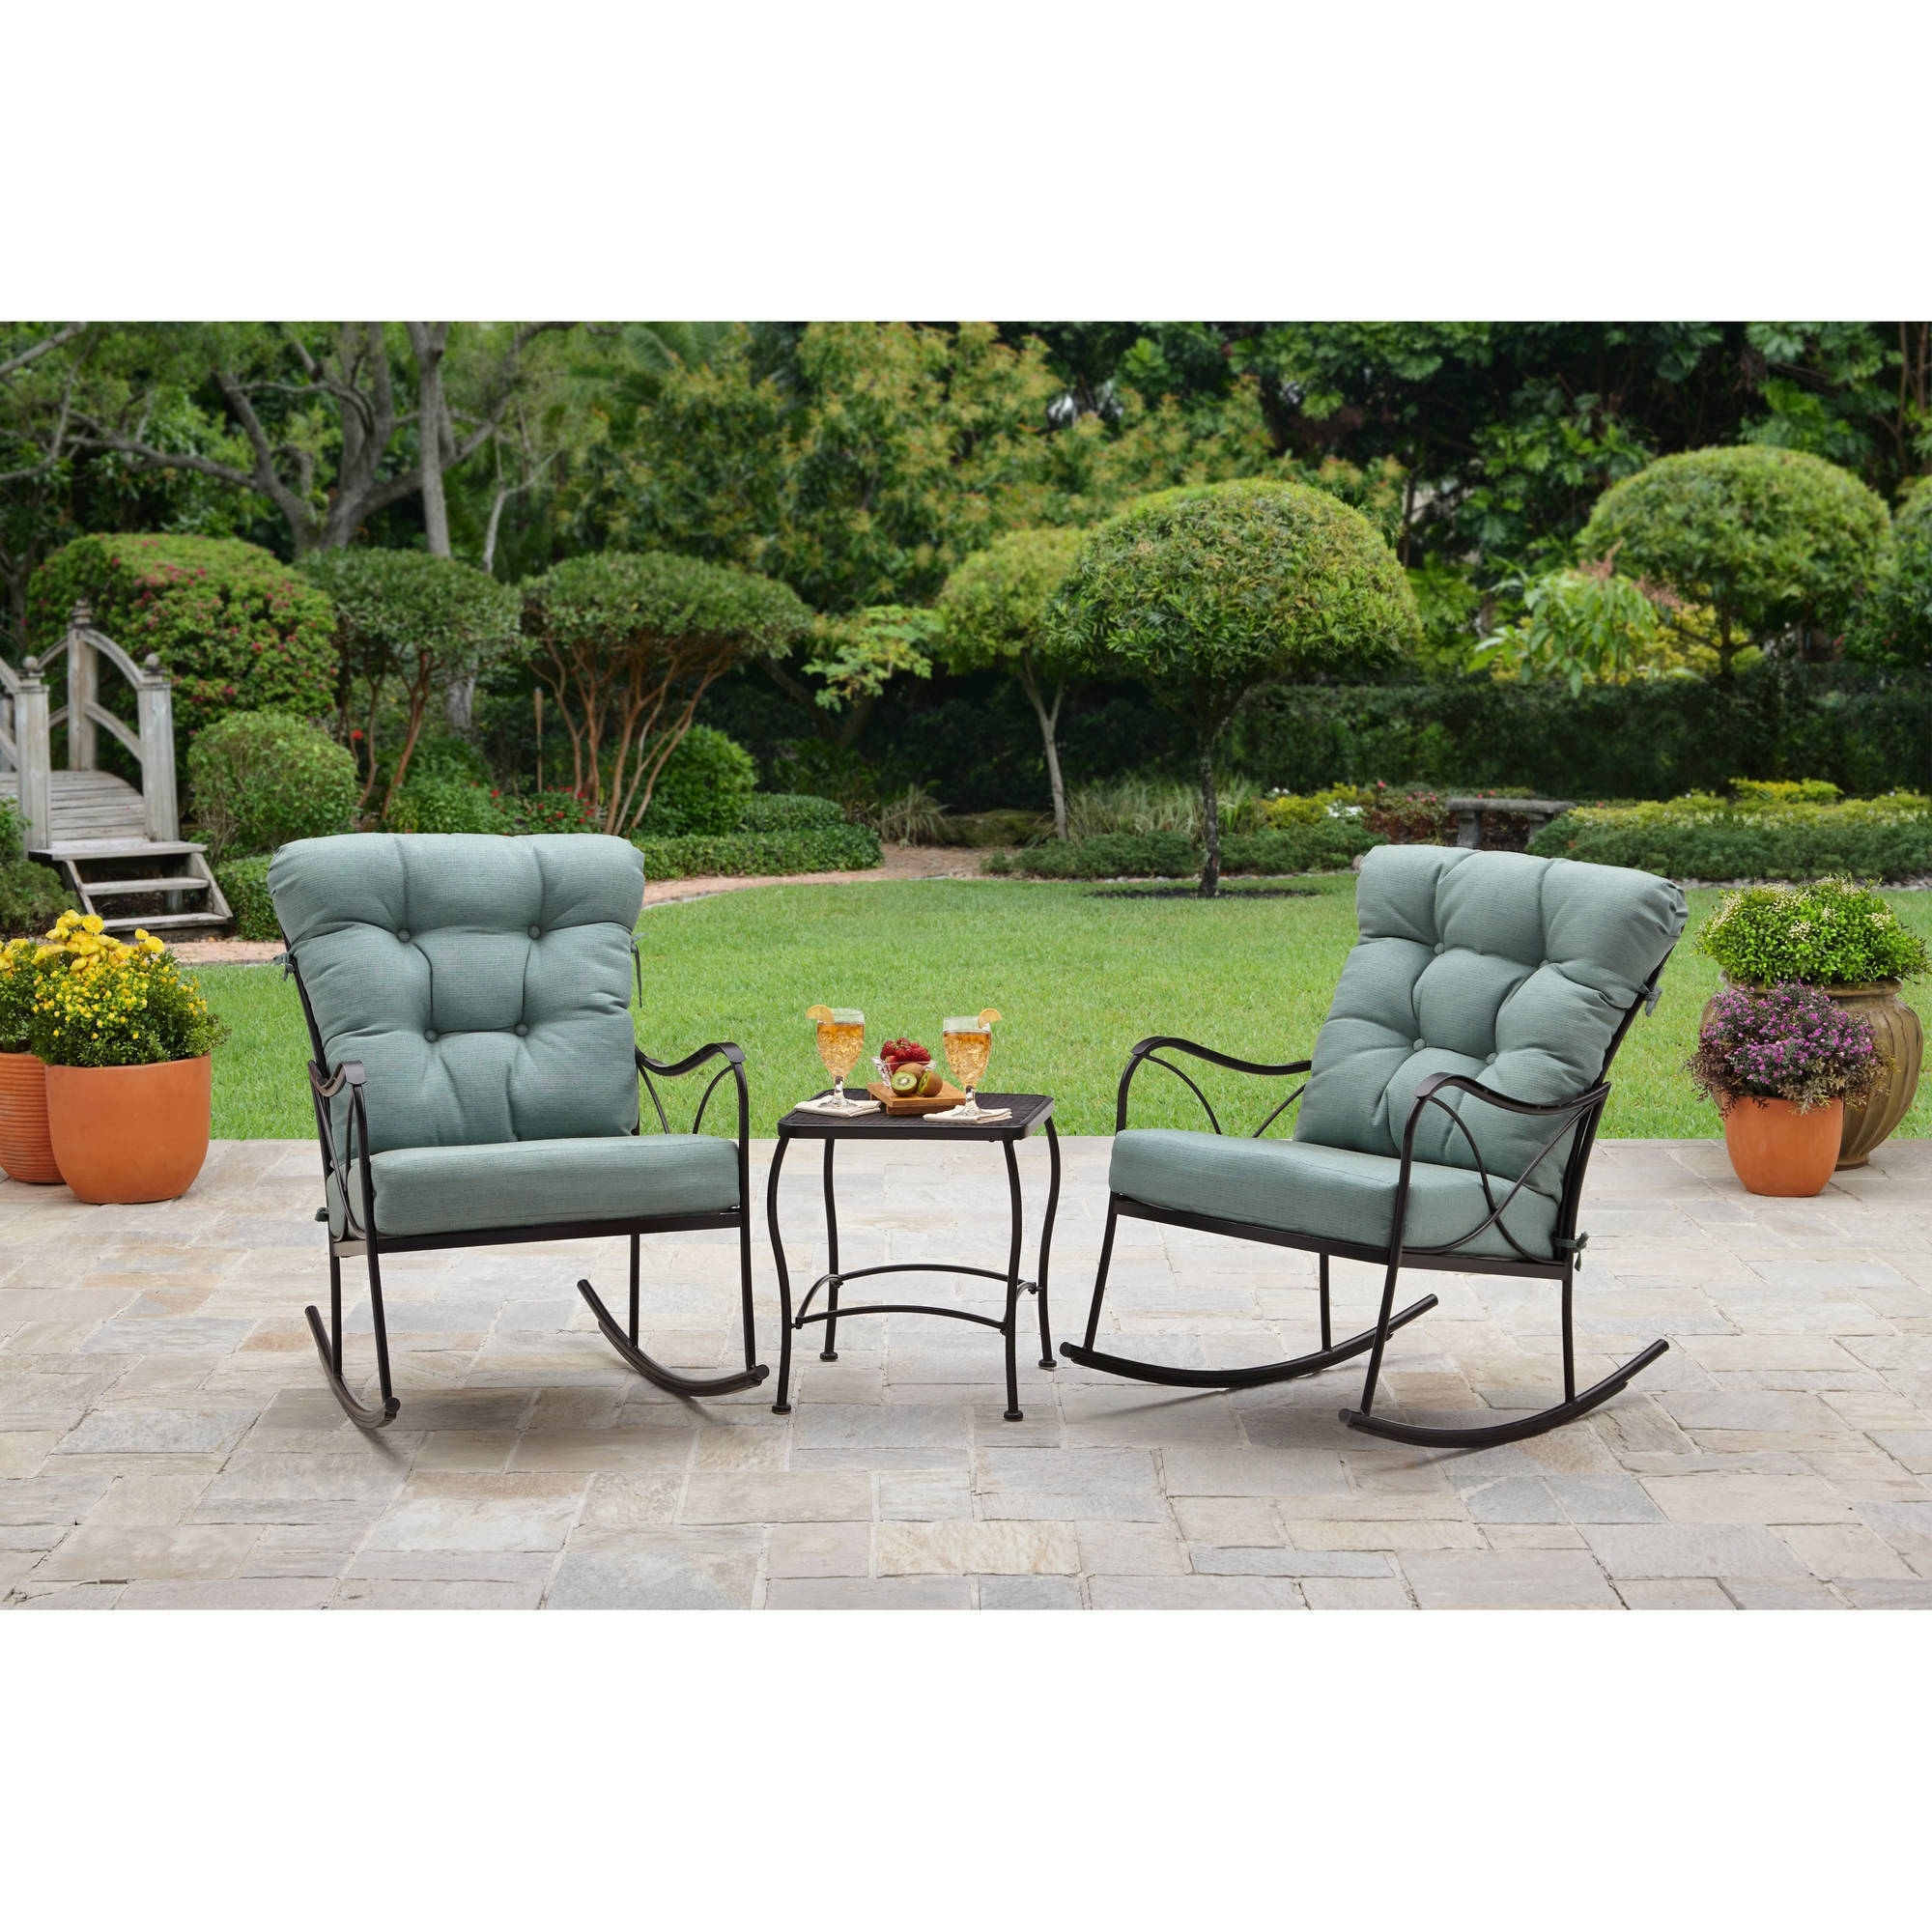 Used Patio Rocking Chairs With Famous Better Homes And Gardens Seacliff 3 Piece Rocking Chair Bistro Set (Gallery 12 of 15)